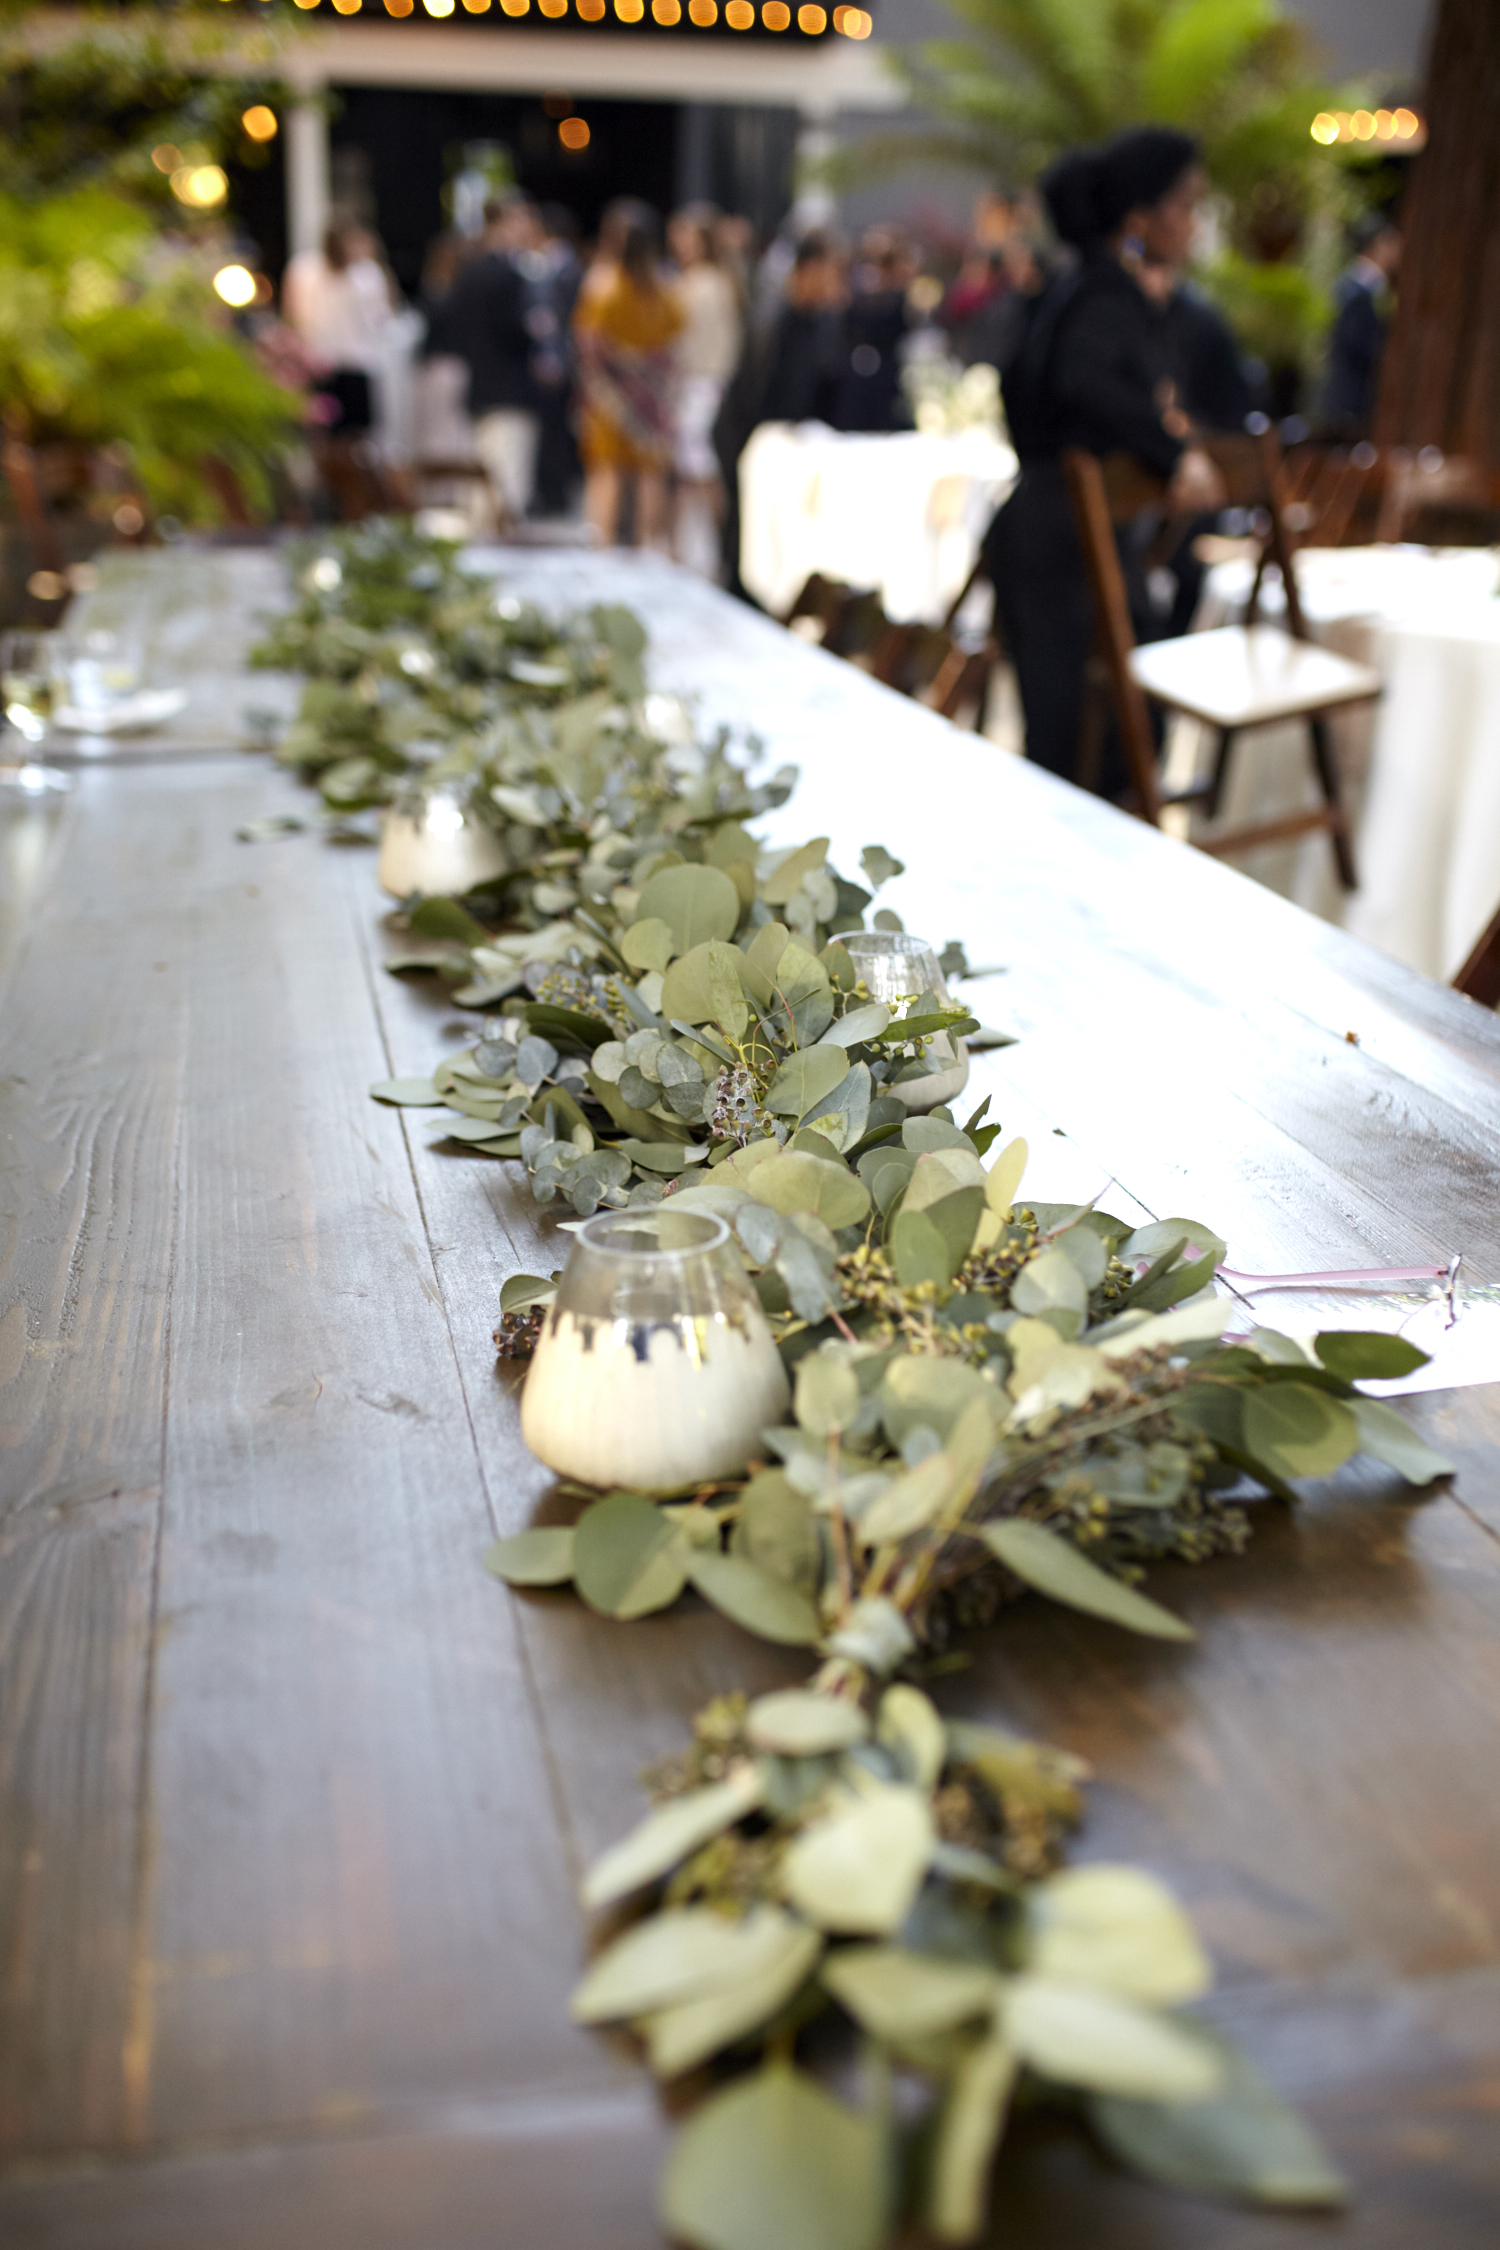 Deer Park Villa - Wedding Planner - Farm Table - Florist